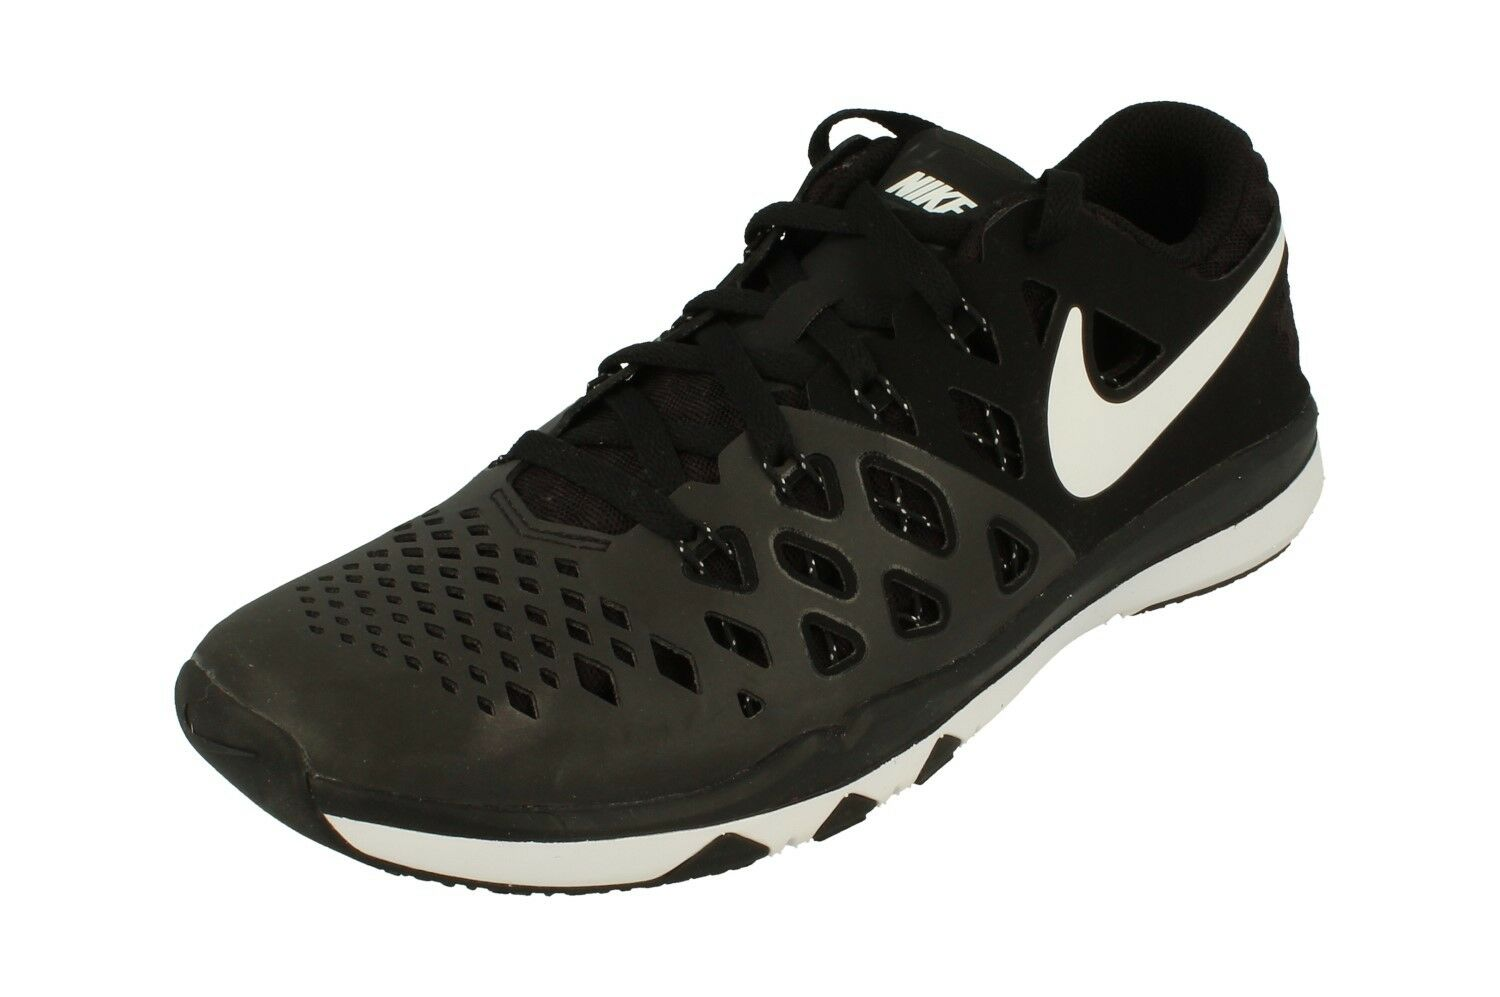 Nike Train Speed 4 Mens Running Trainers 843937 Sneakers Shoes 010 Seasonal price cuts, discount benefits